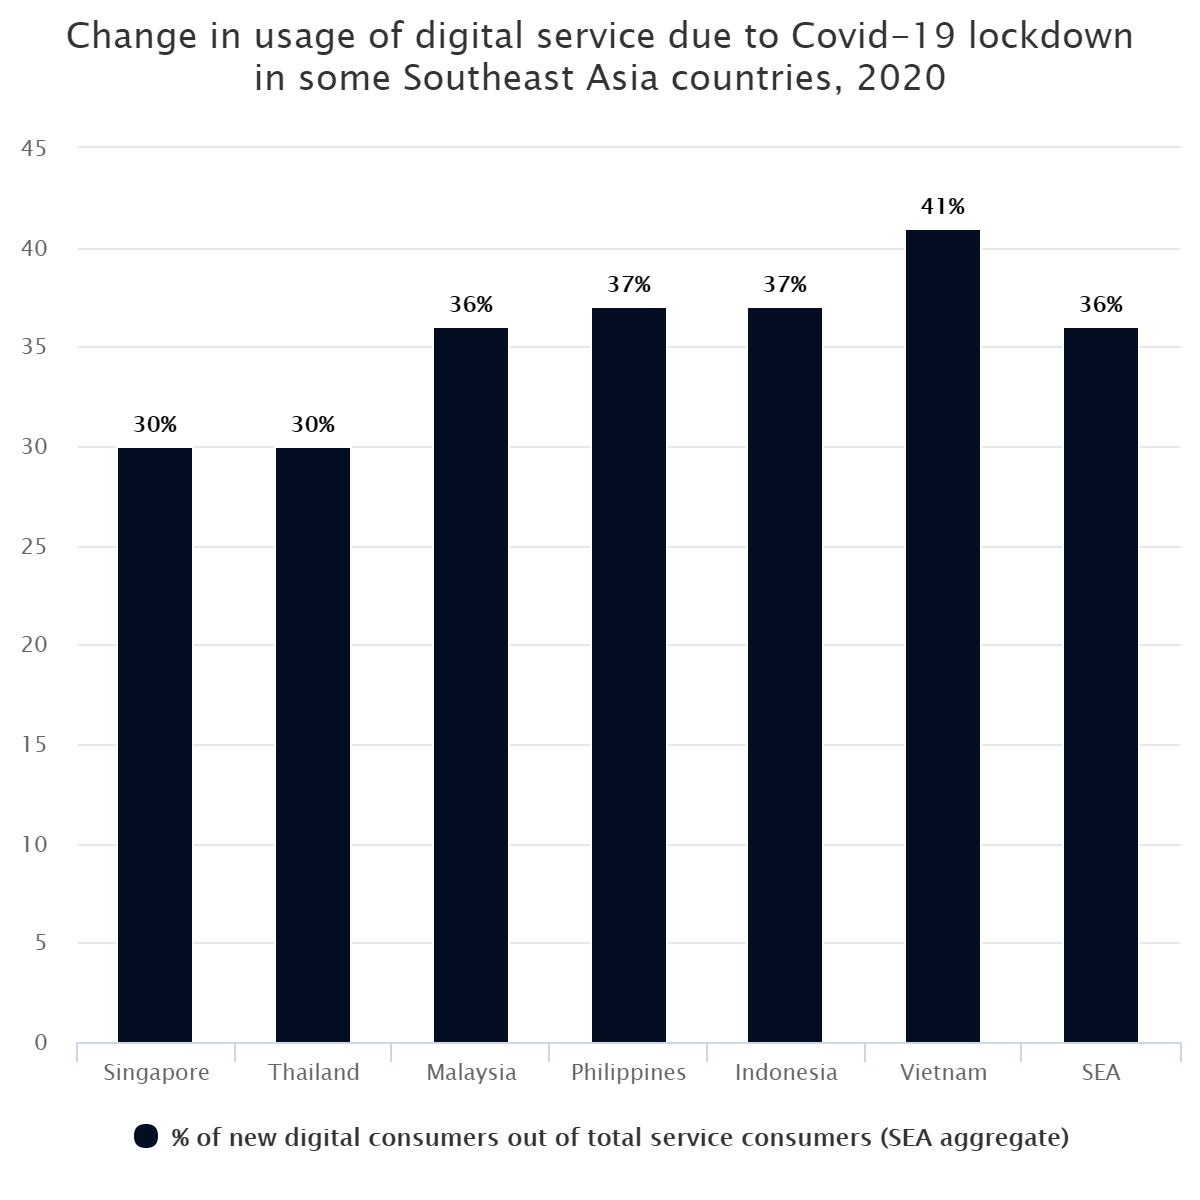 Change in usage of digital service due to Covid-19 lockdown in some Southeast Asia countries, 2020